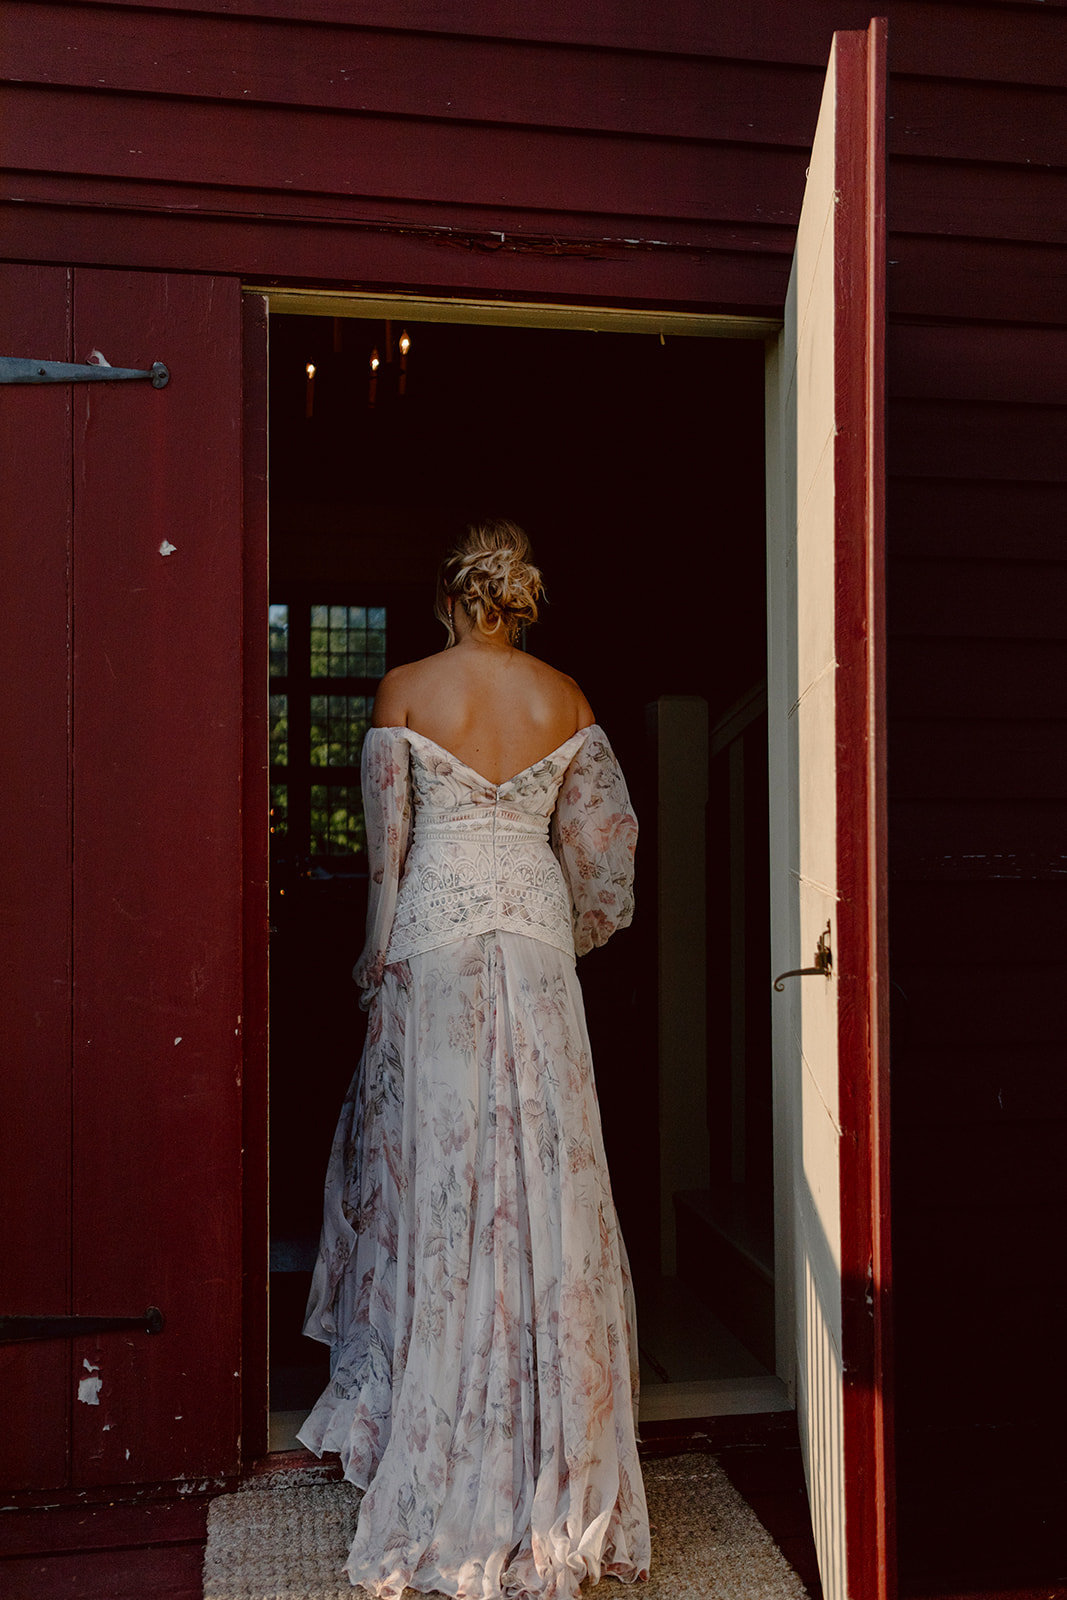 LMS-photo-bonita-gabrielle-smith-Monica-Relyea-Events-Heirloom-Fire-the-dutchess-hotel-grasmere-farm-rhinebeck-ny-upstate-hudson-valley-wedding-planner4A0A0288